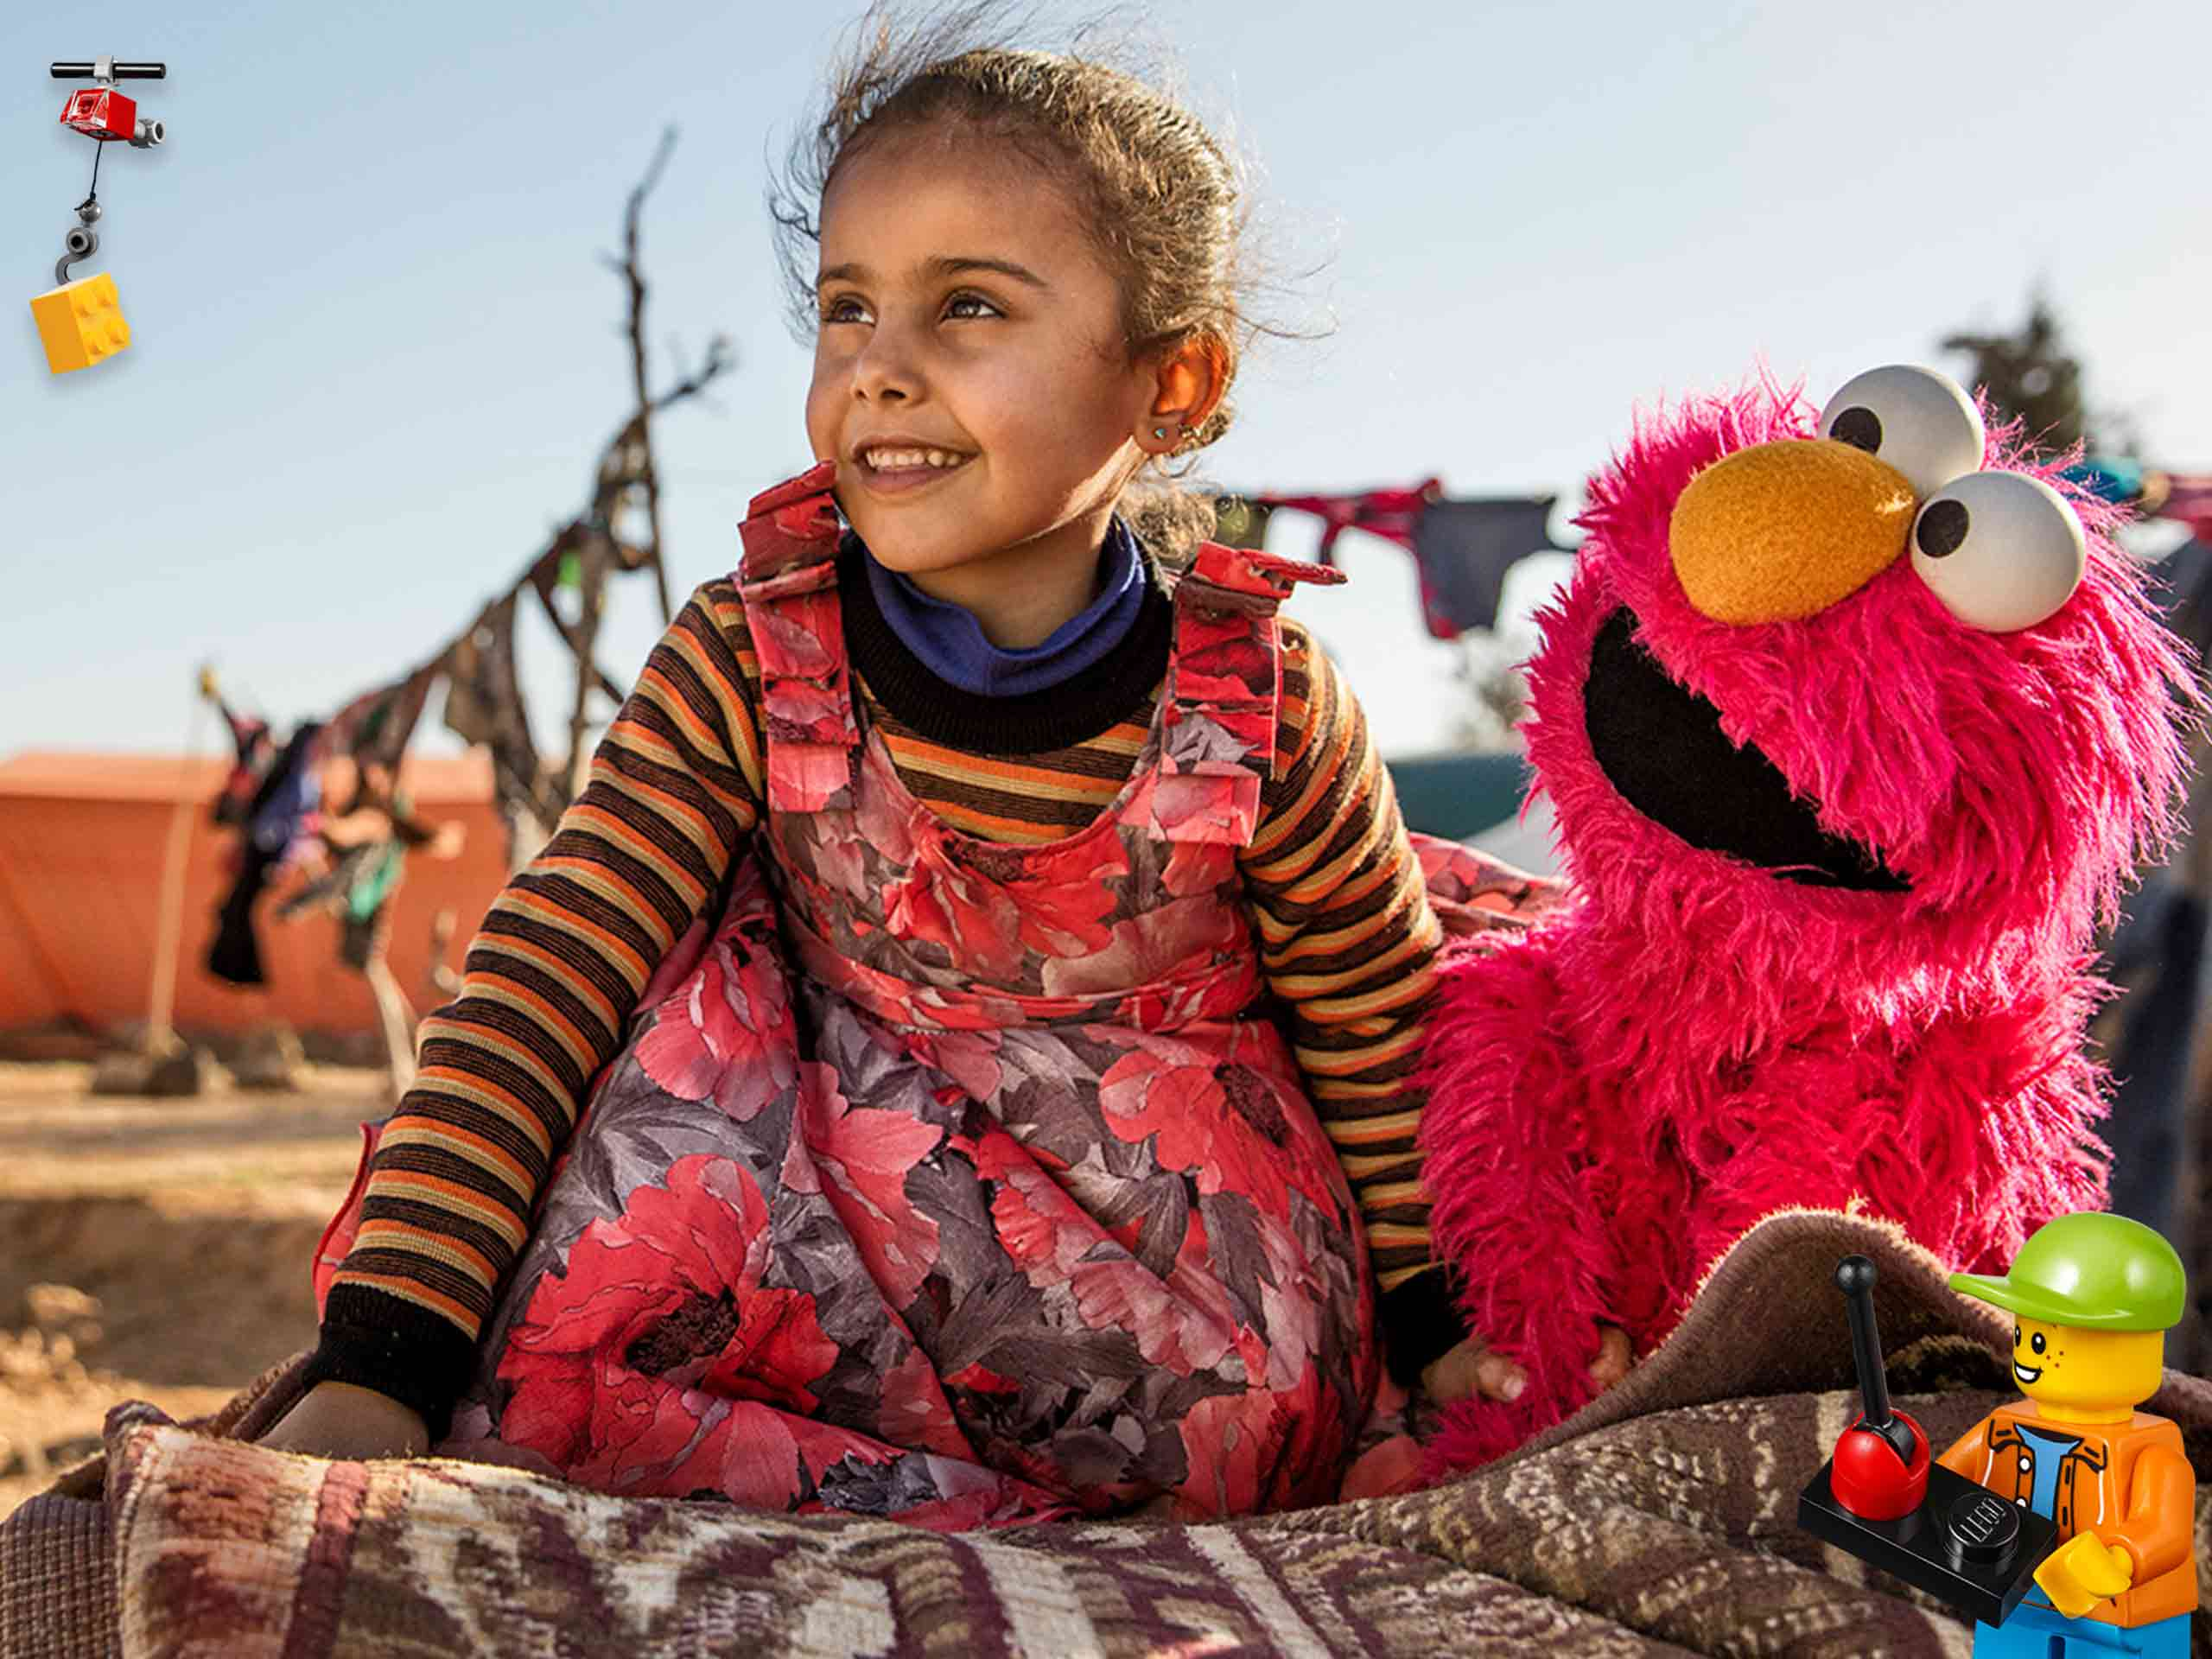 Supporting children affected by conflict